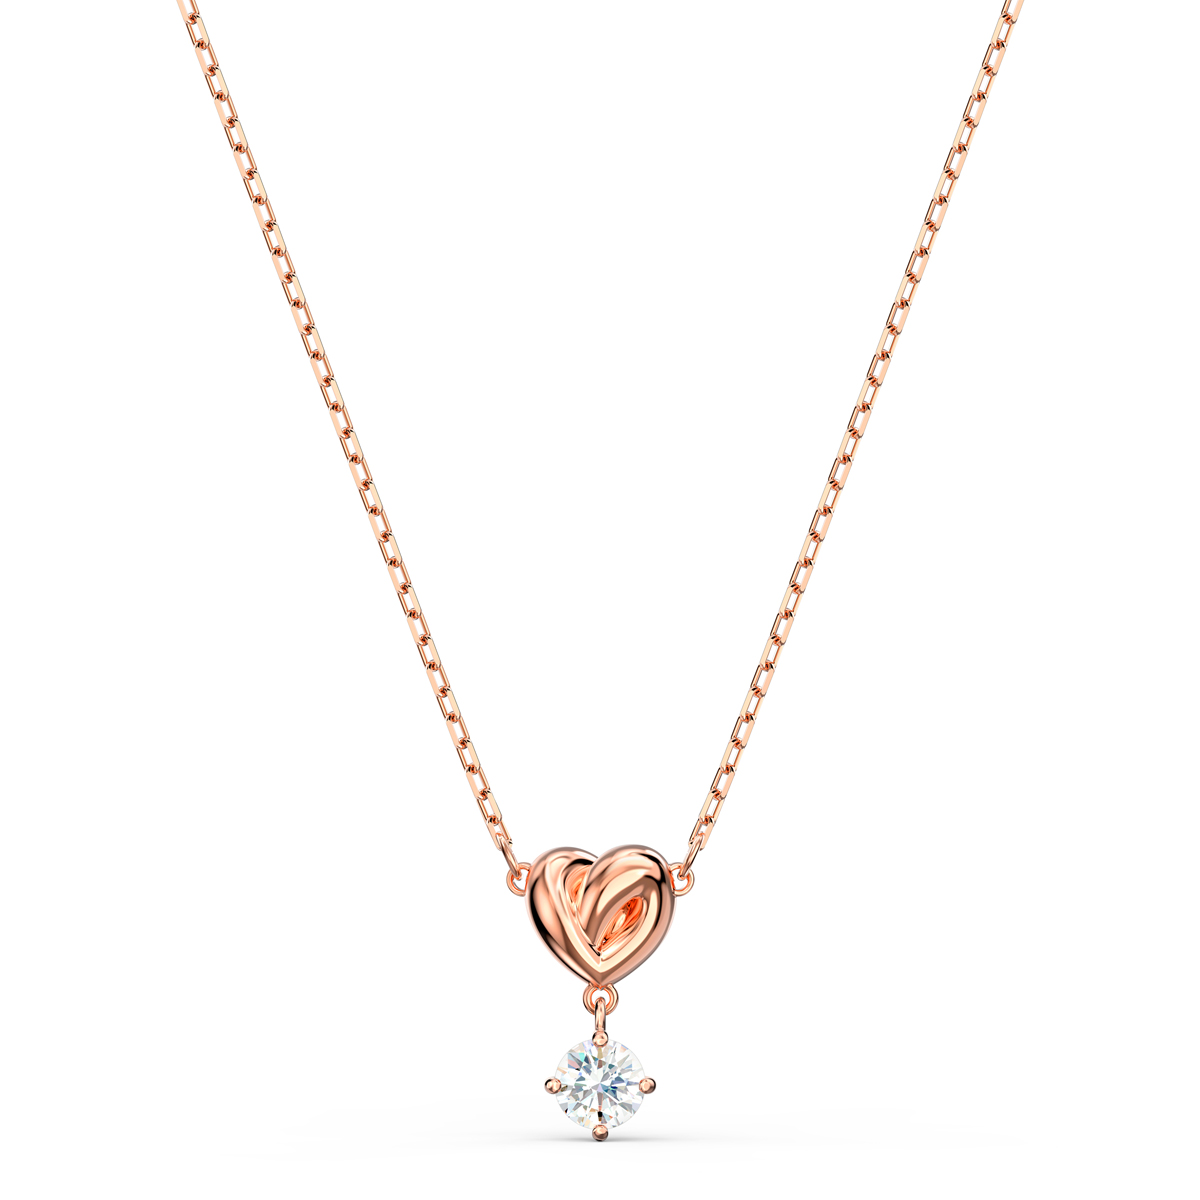 Swarovski Necklace Lifelong Heart Pendant Solitare Crystal and Rose Gold